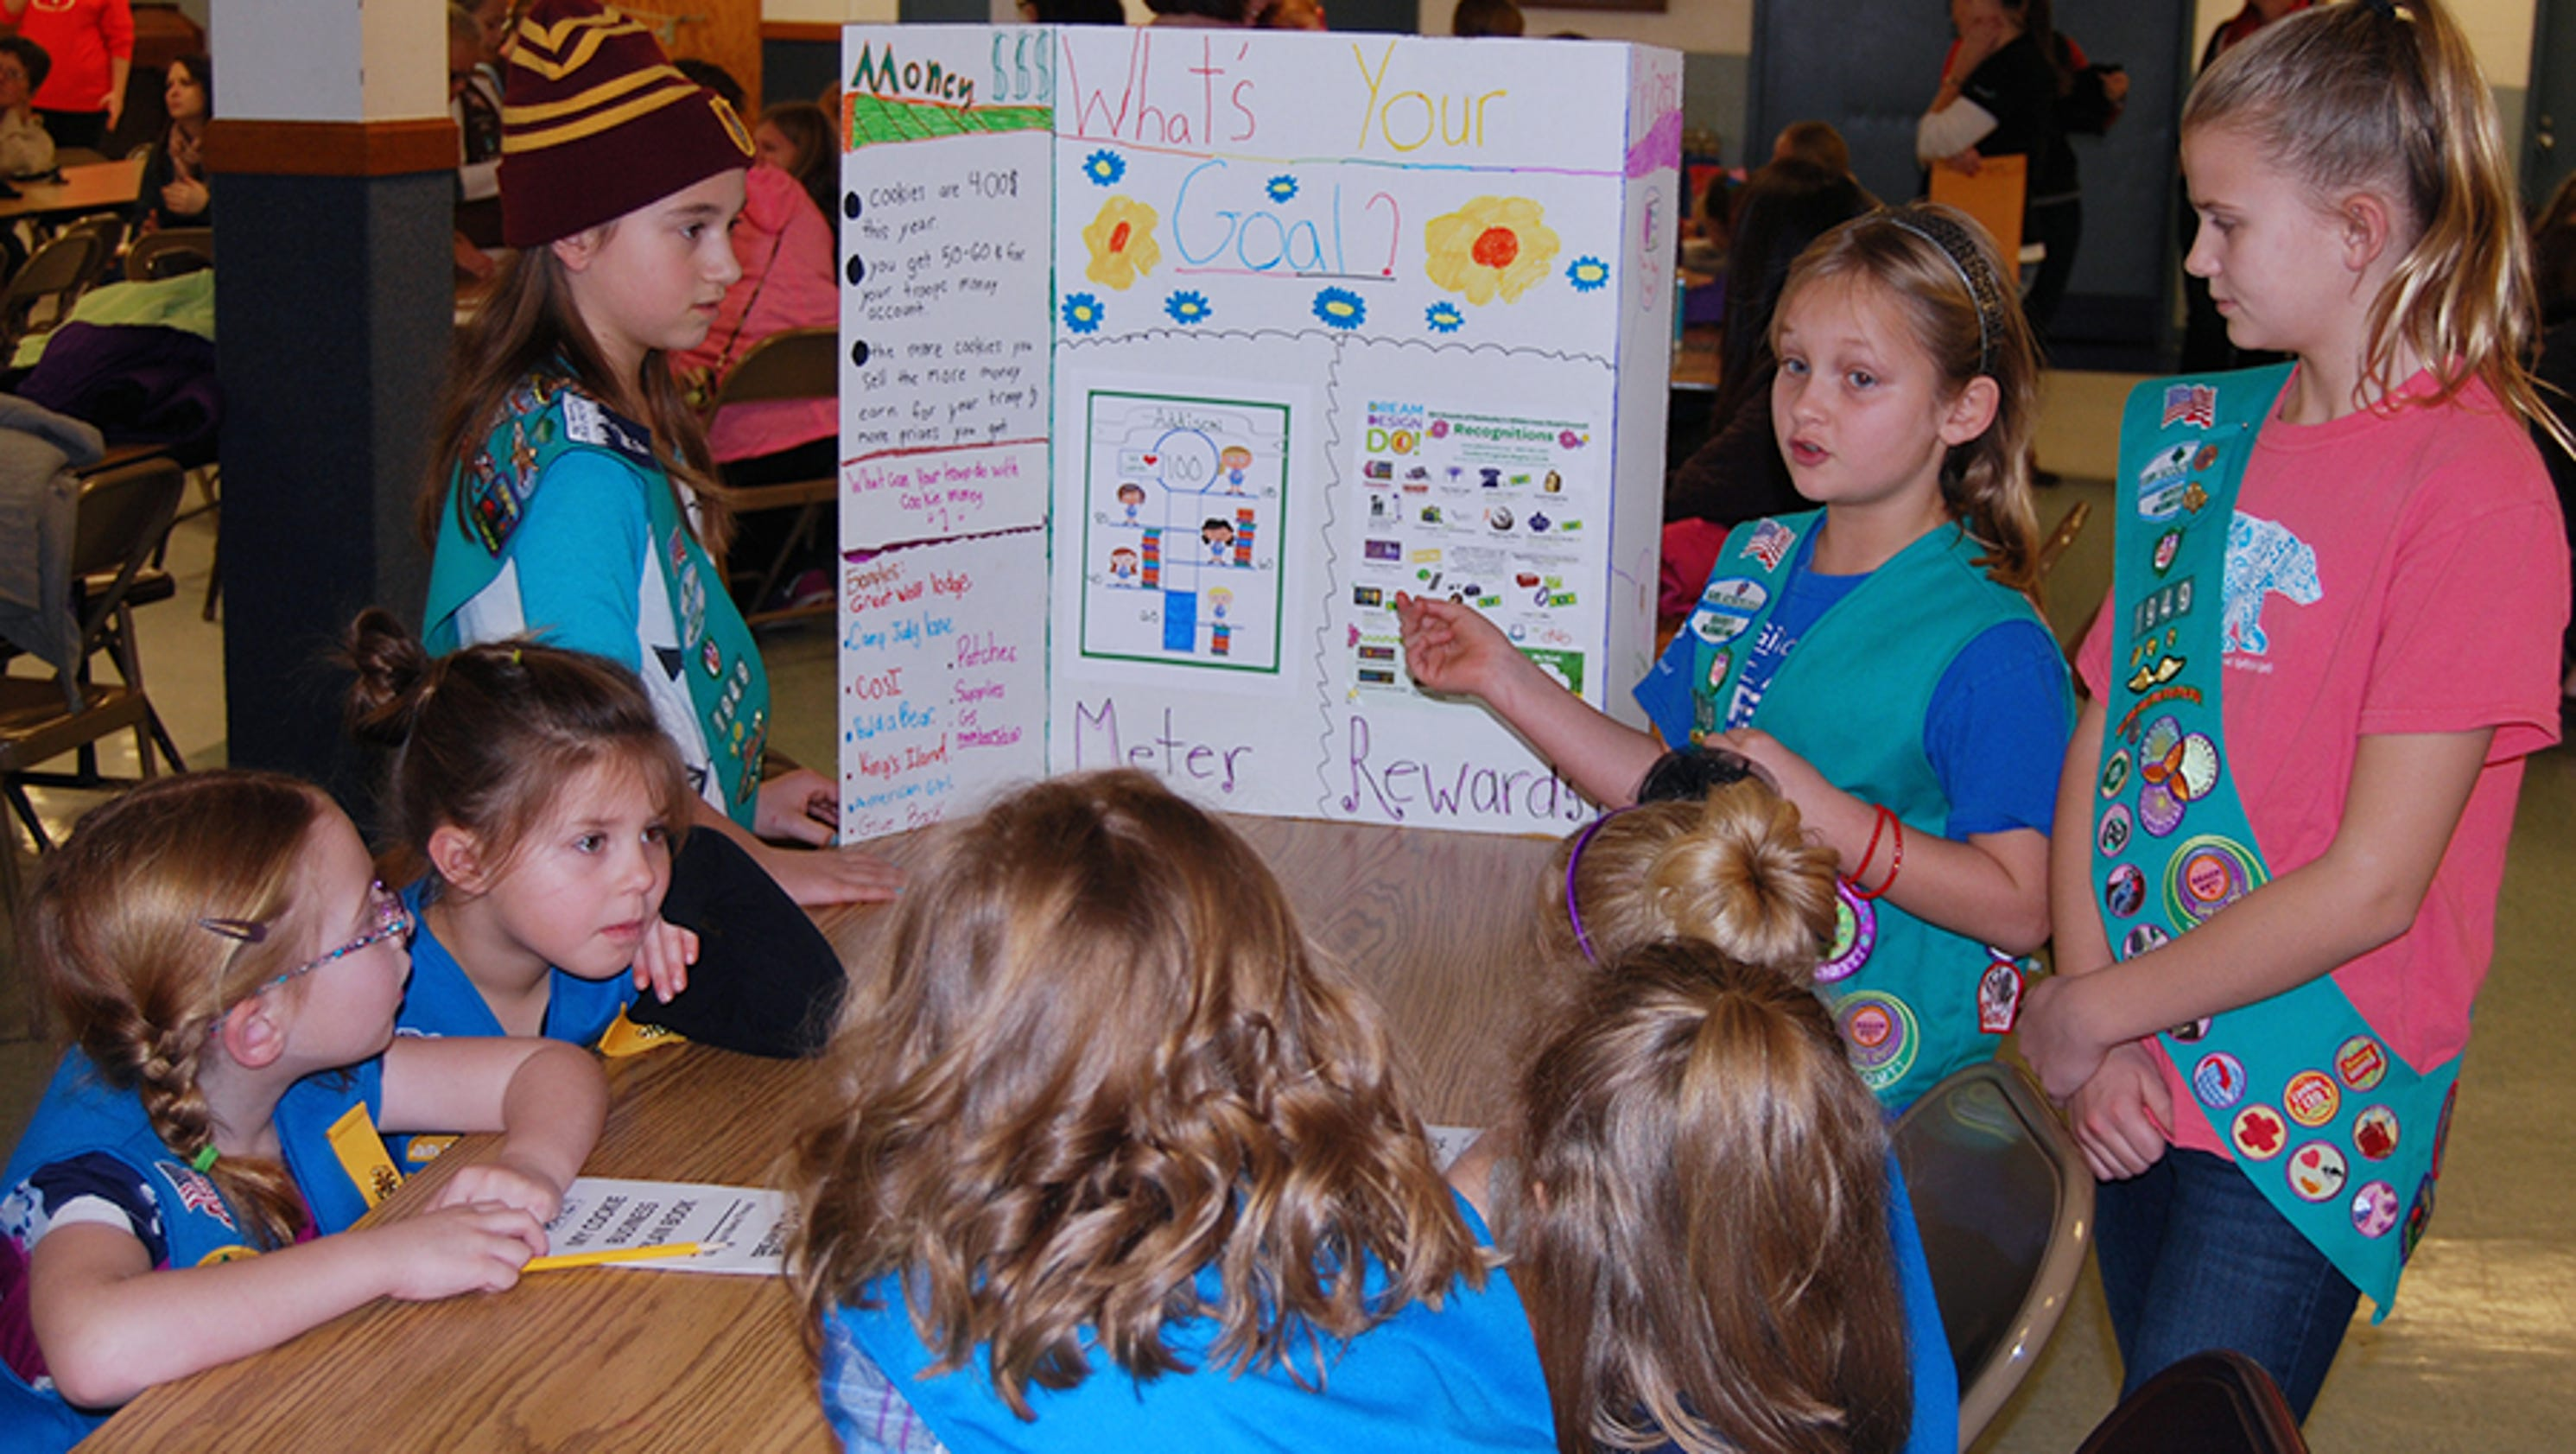 alexandria girl scouts talk cookie strategy